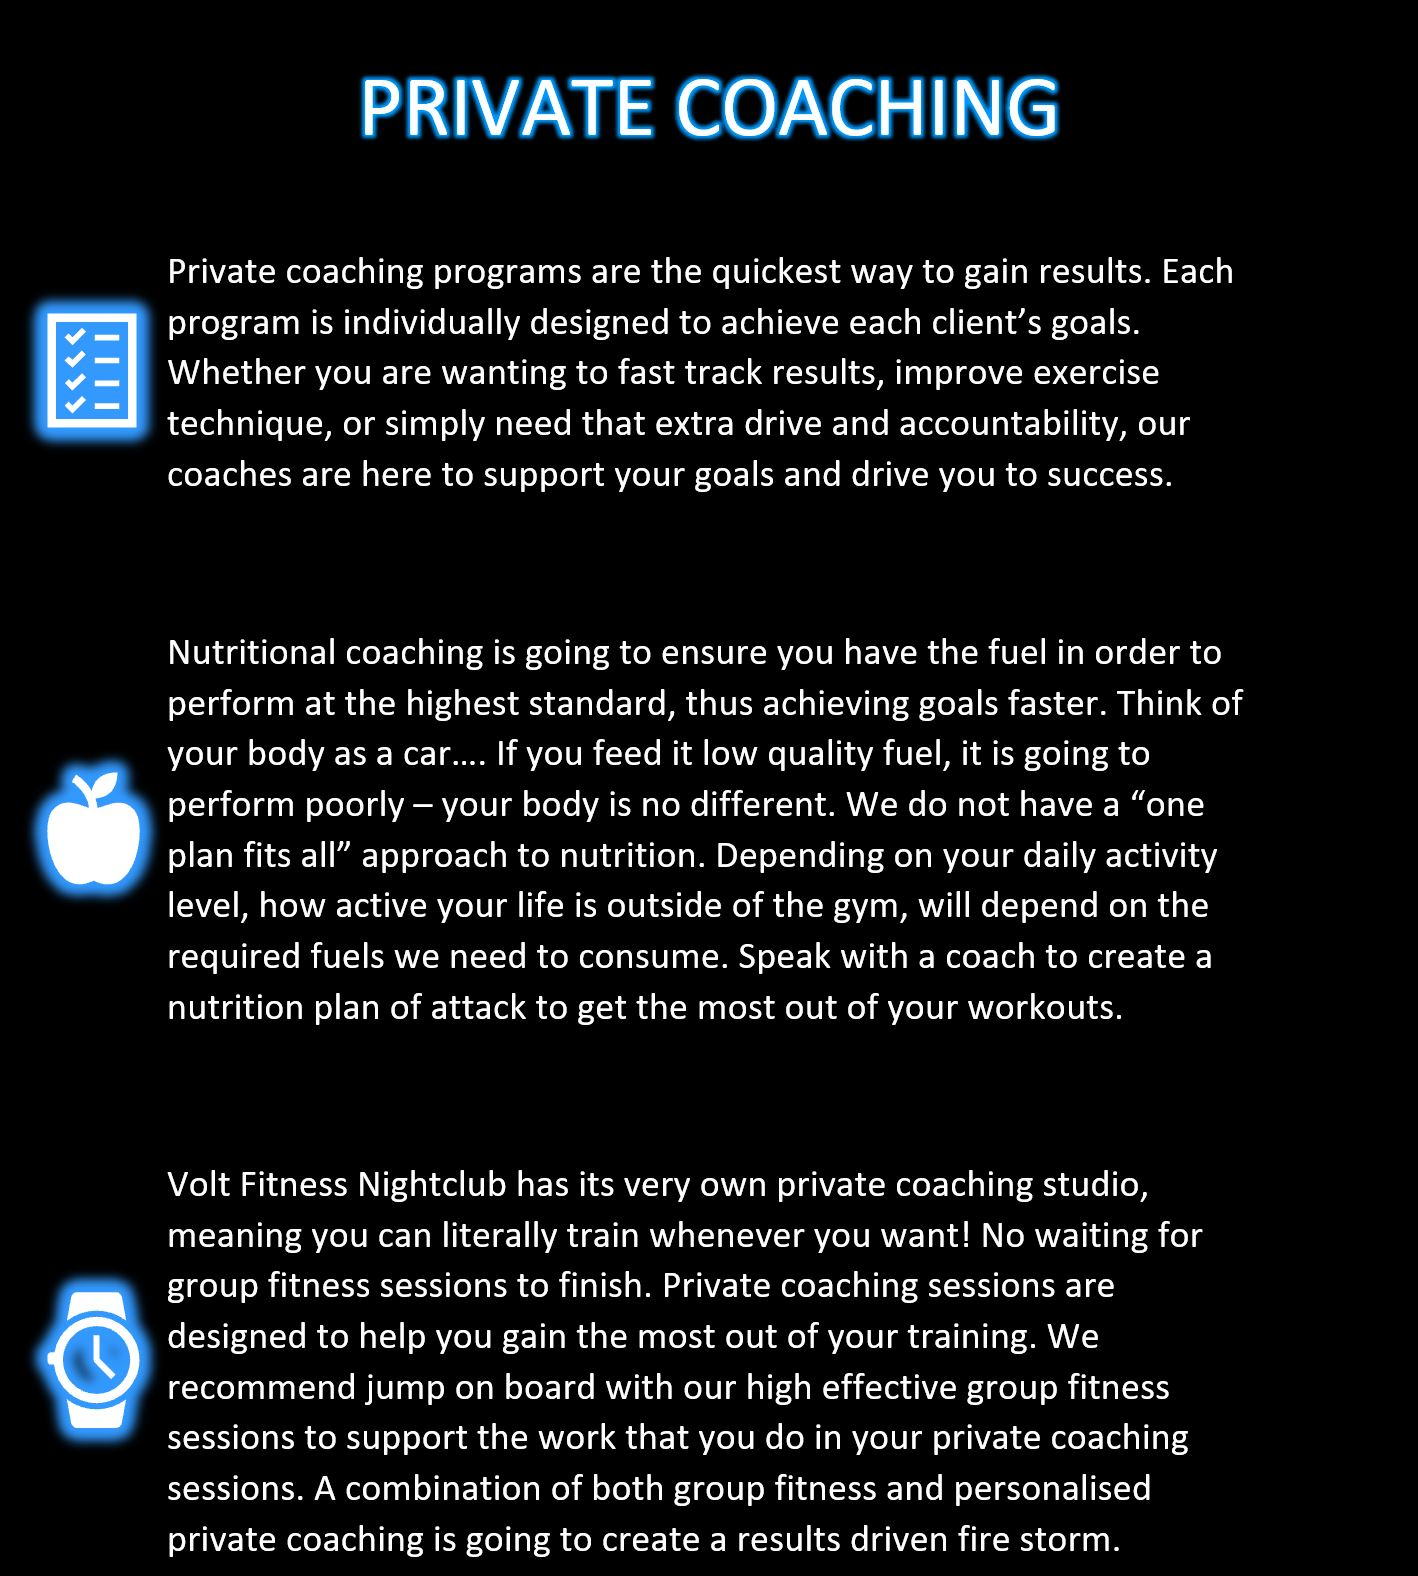 PRIVATE COACHING STUDIO.JPG